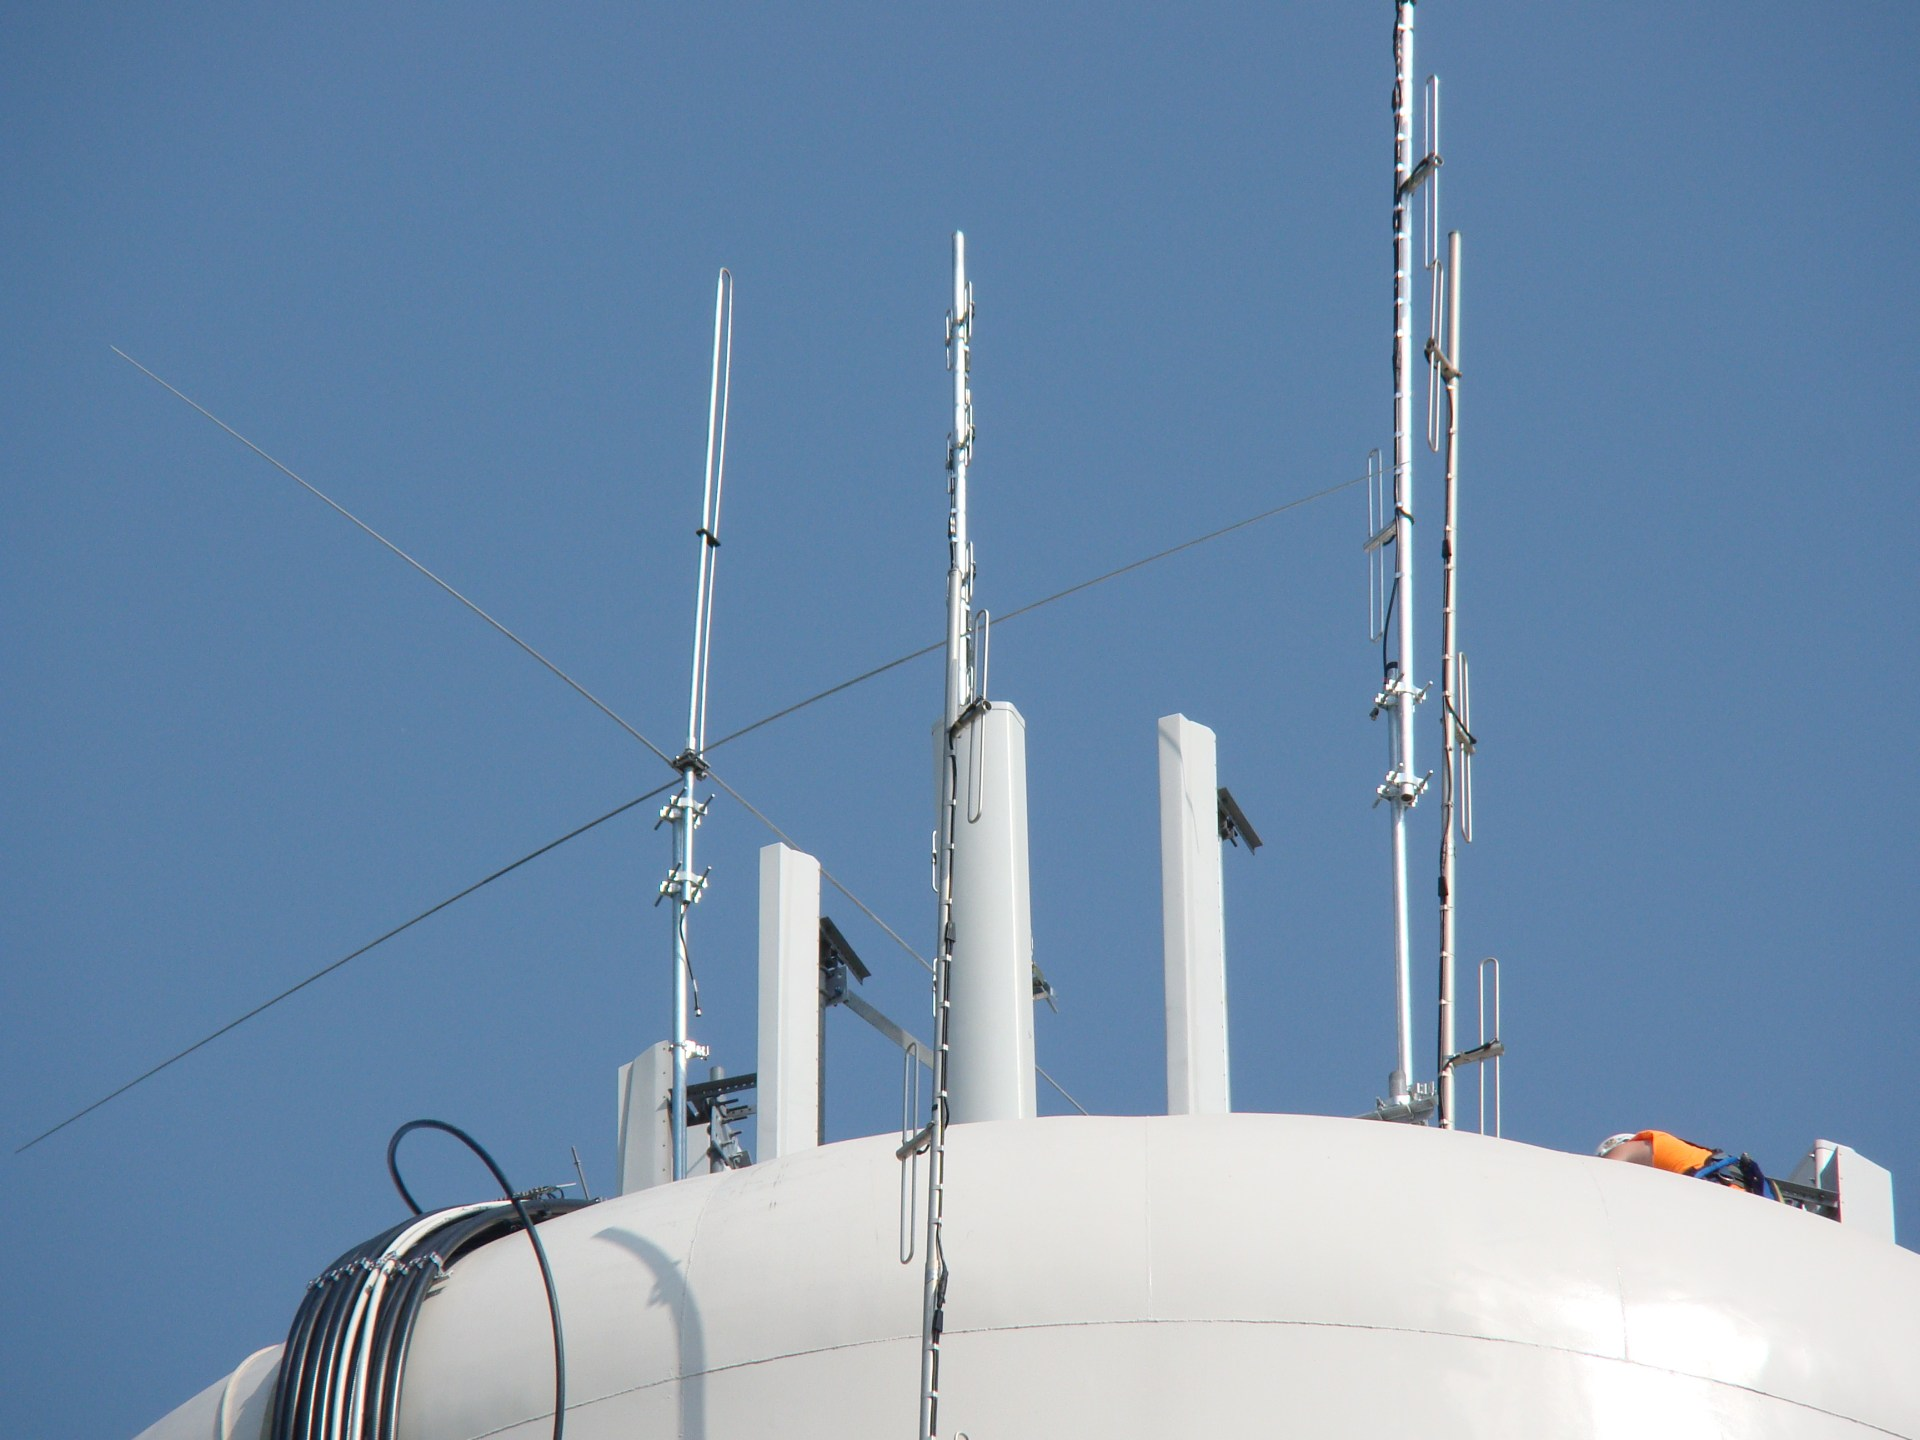 SMLRS | Southwest Missouri Linked Repeater System